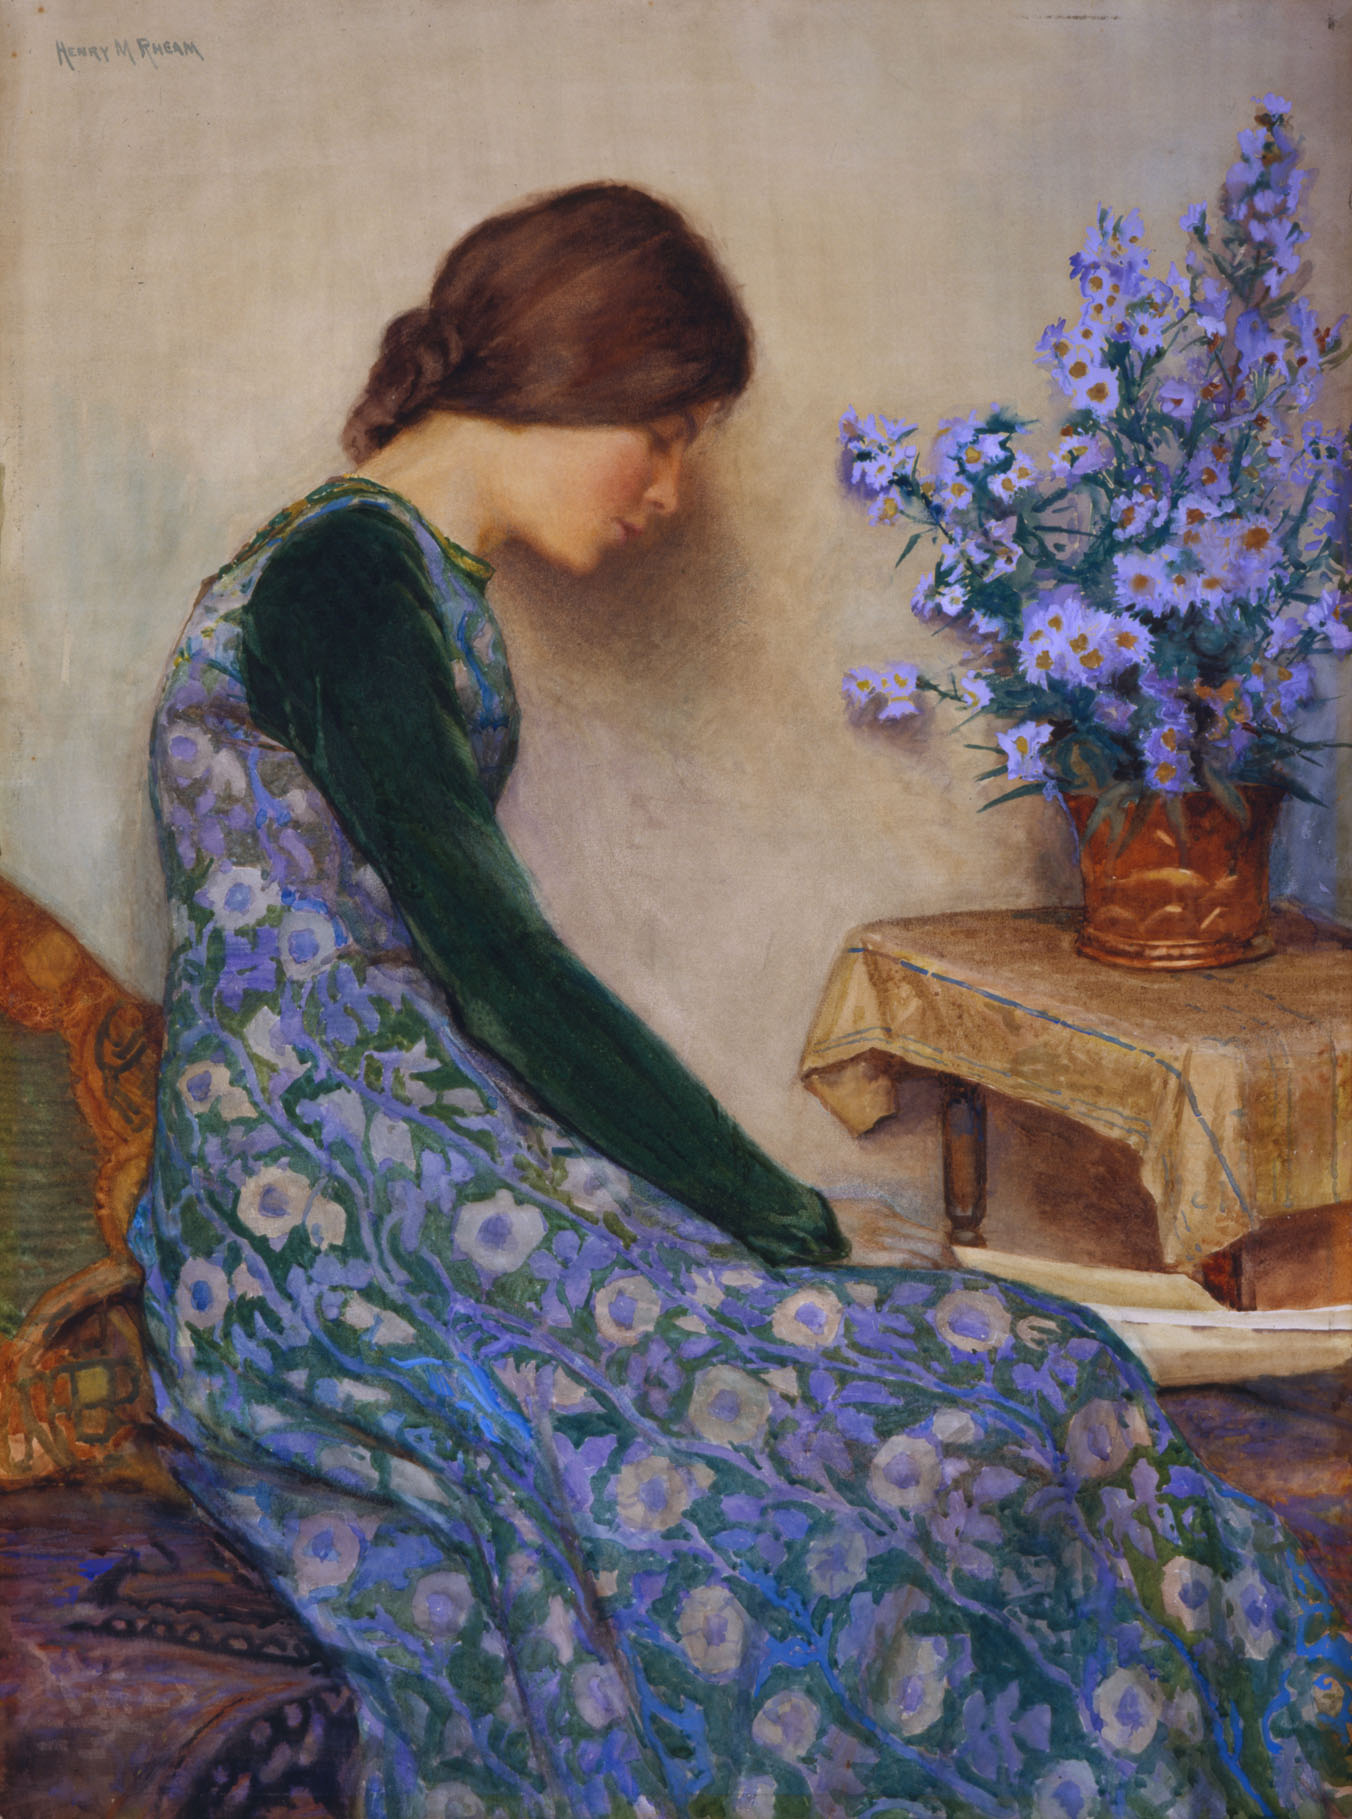 Watercolour painting of a profile view of a seated woman. She has auburn hair tied at her neck, long dark-green sleeves, but the body of her dress is a floral, purpleish-blue pattern. She appears to be sleeping with her head against the wall and is facing a vase of flowers, which are the same colours as her dress.